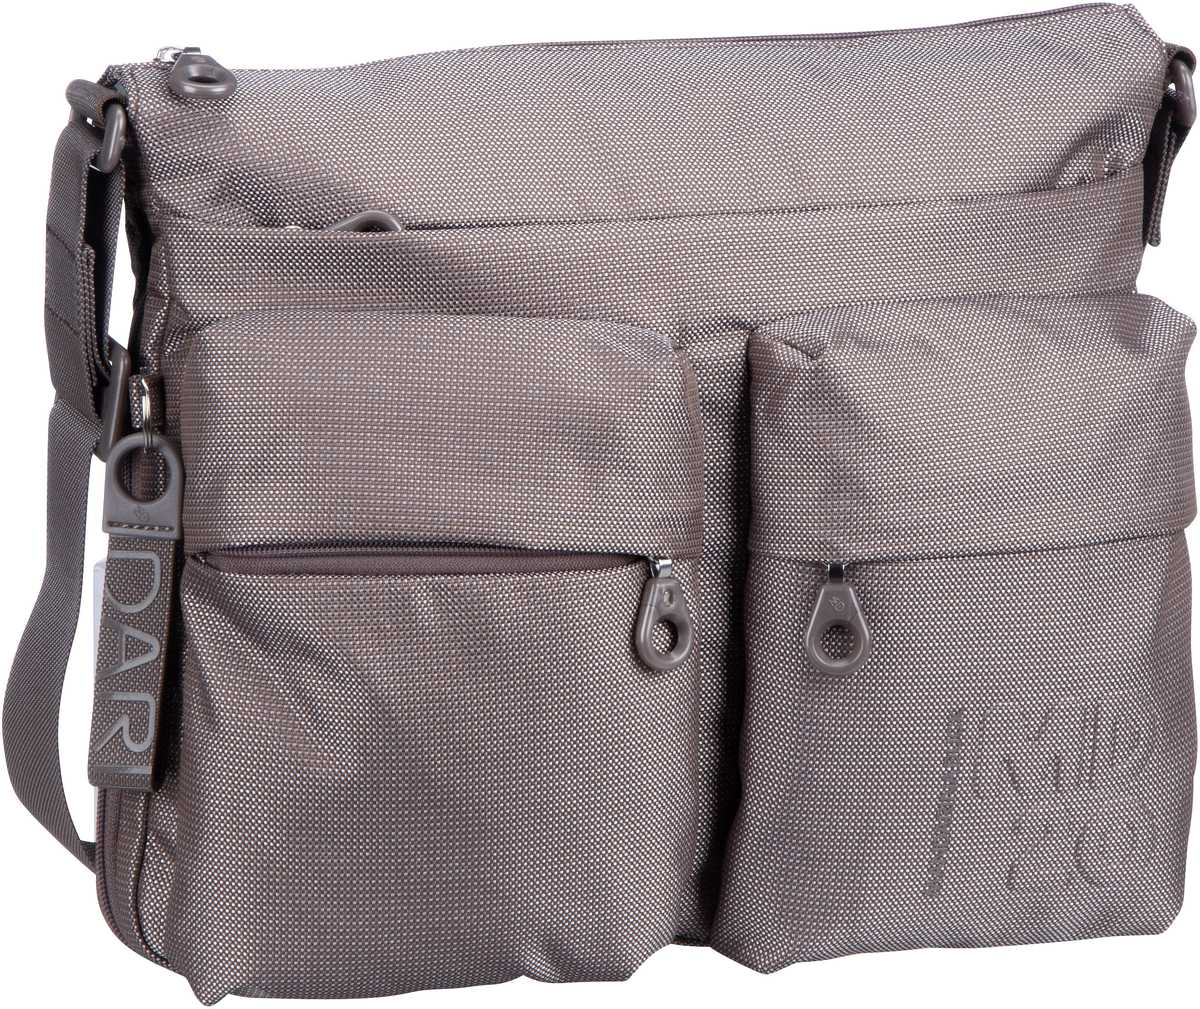 Umhängetasche MD20 Big Crossover Bag QMTX6 Taupe